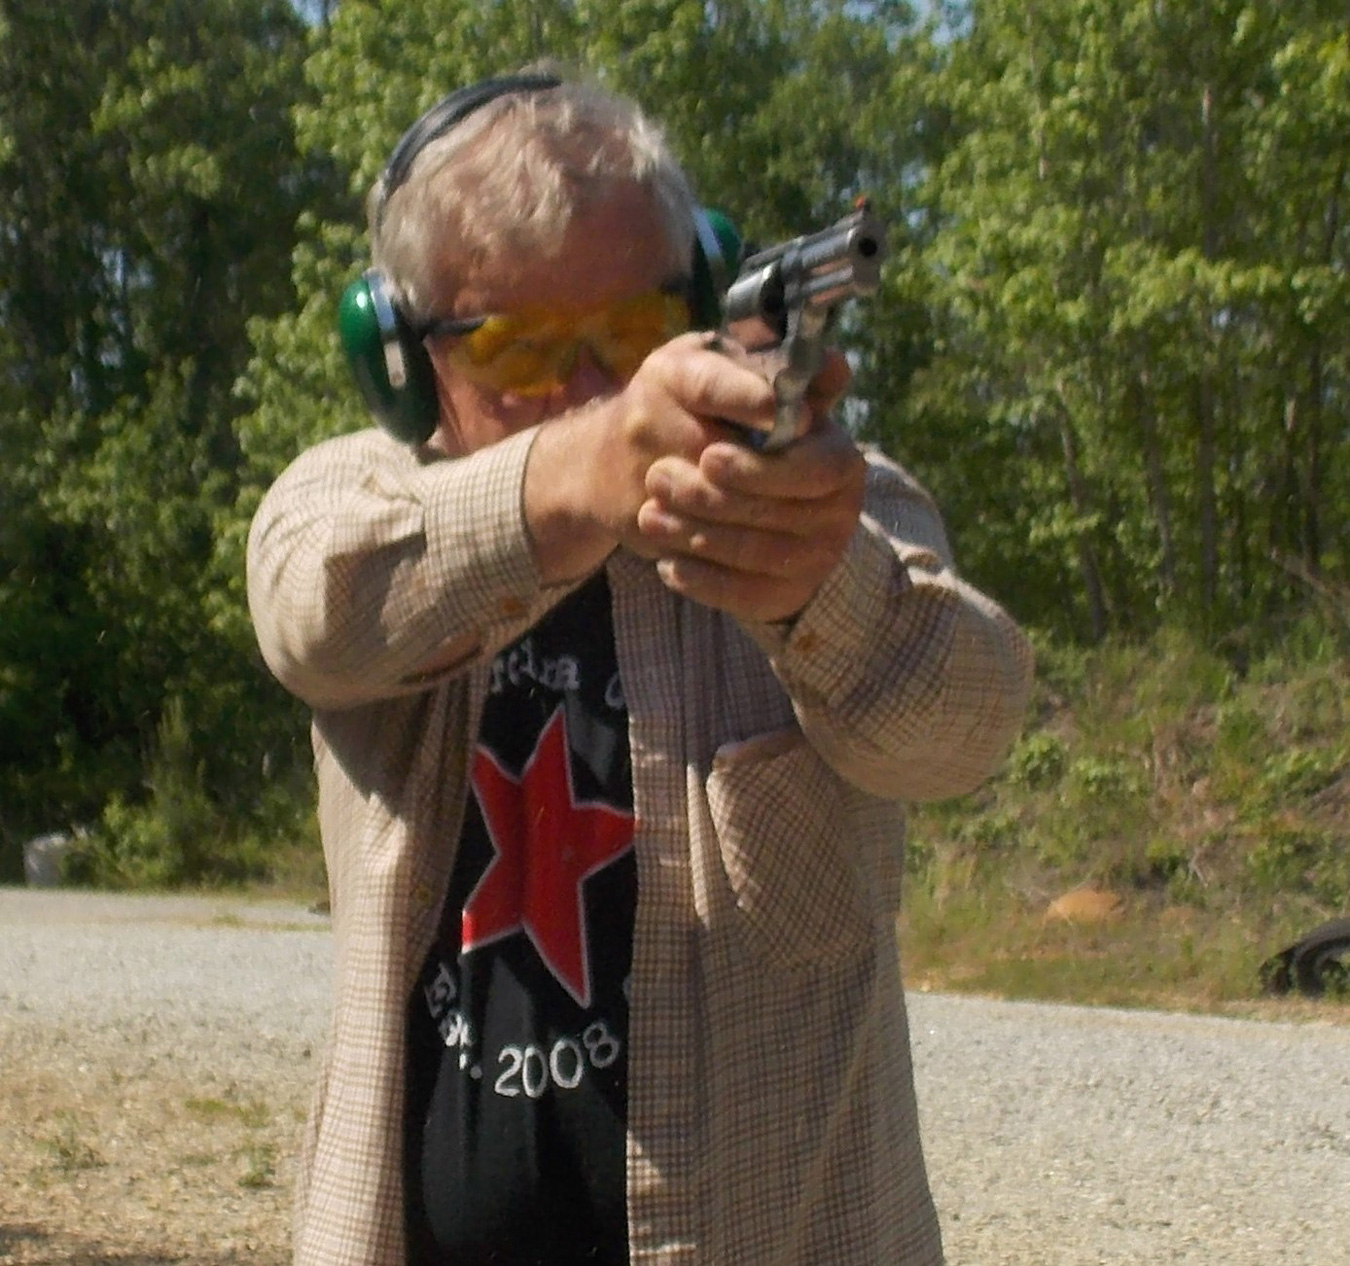 Bob Campbell shooting the Smith and Wesson 686 plus revolver